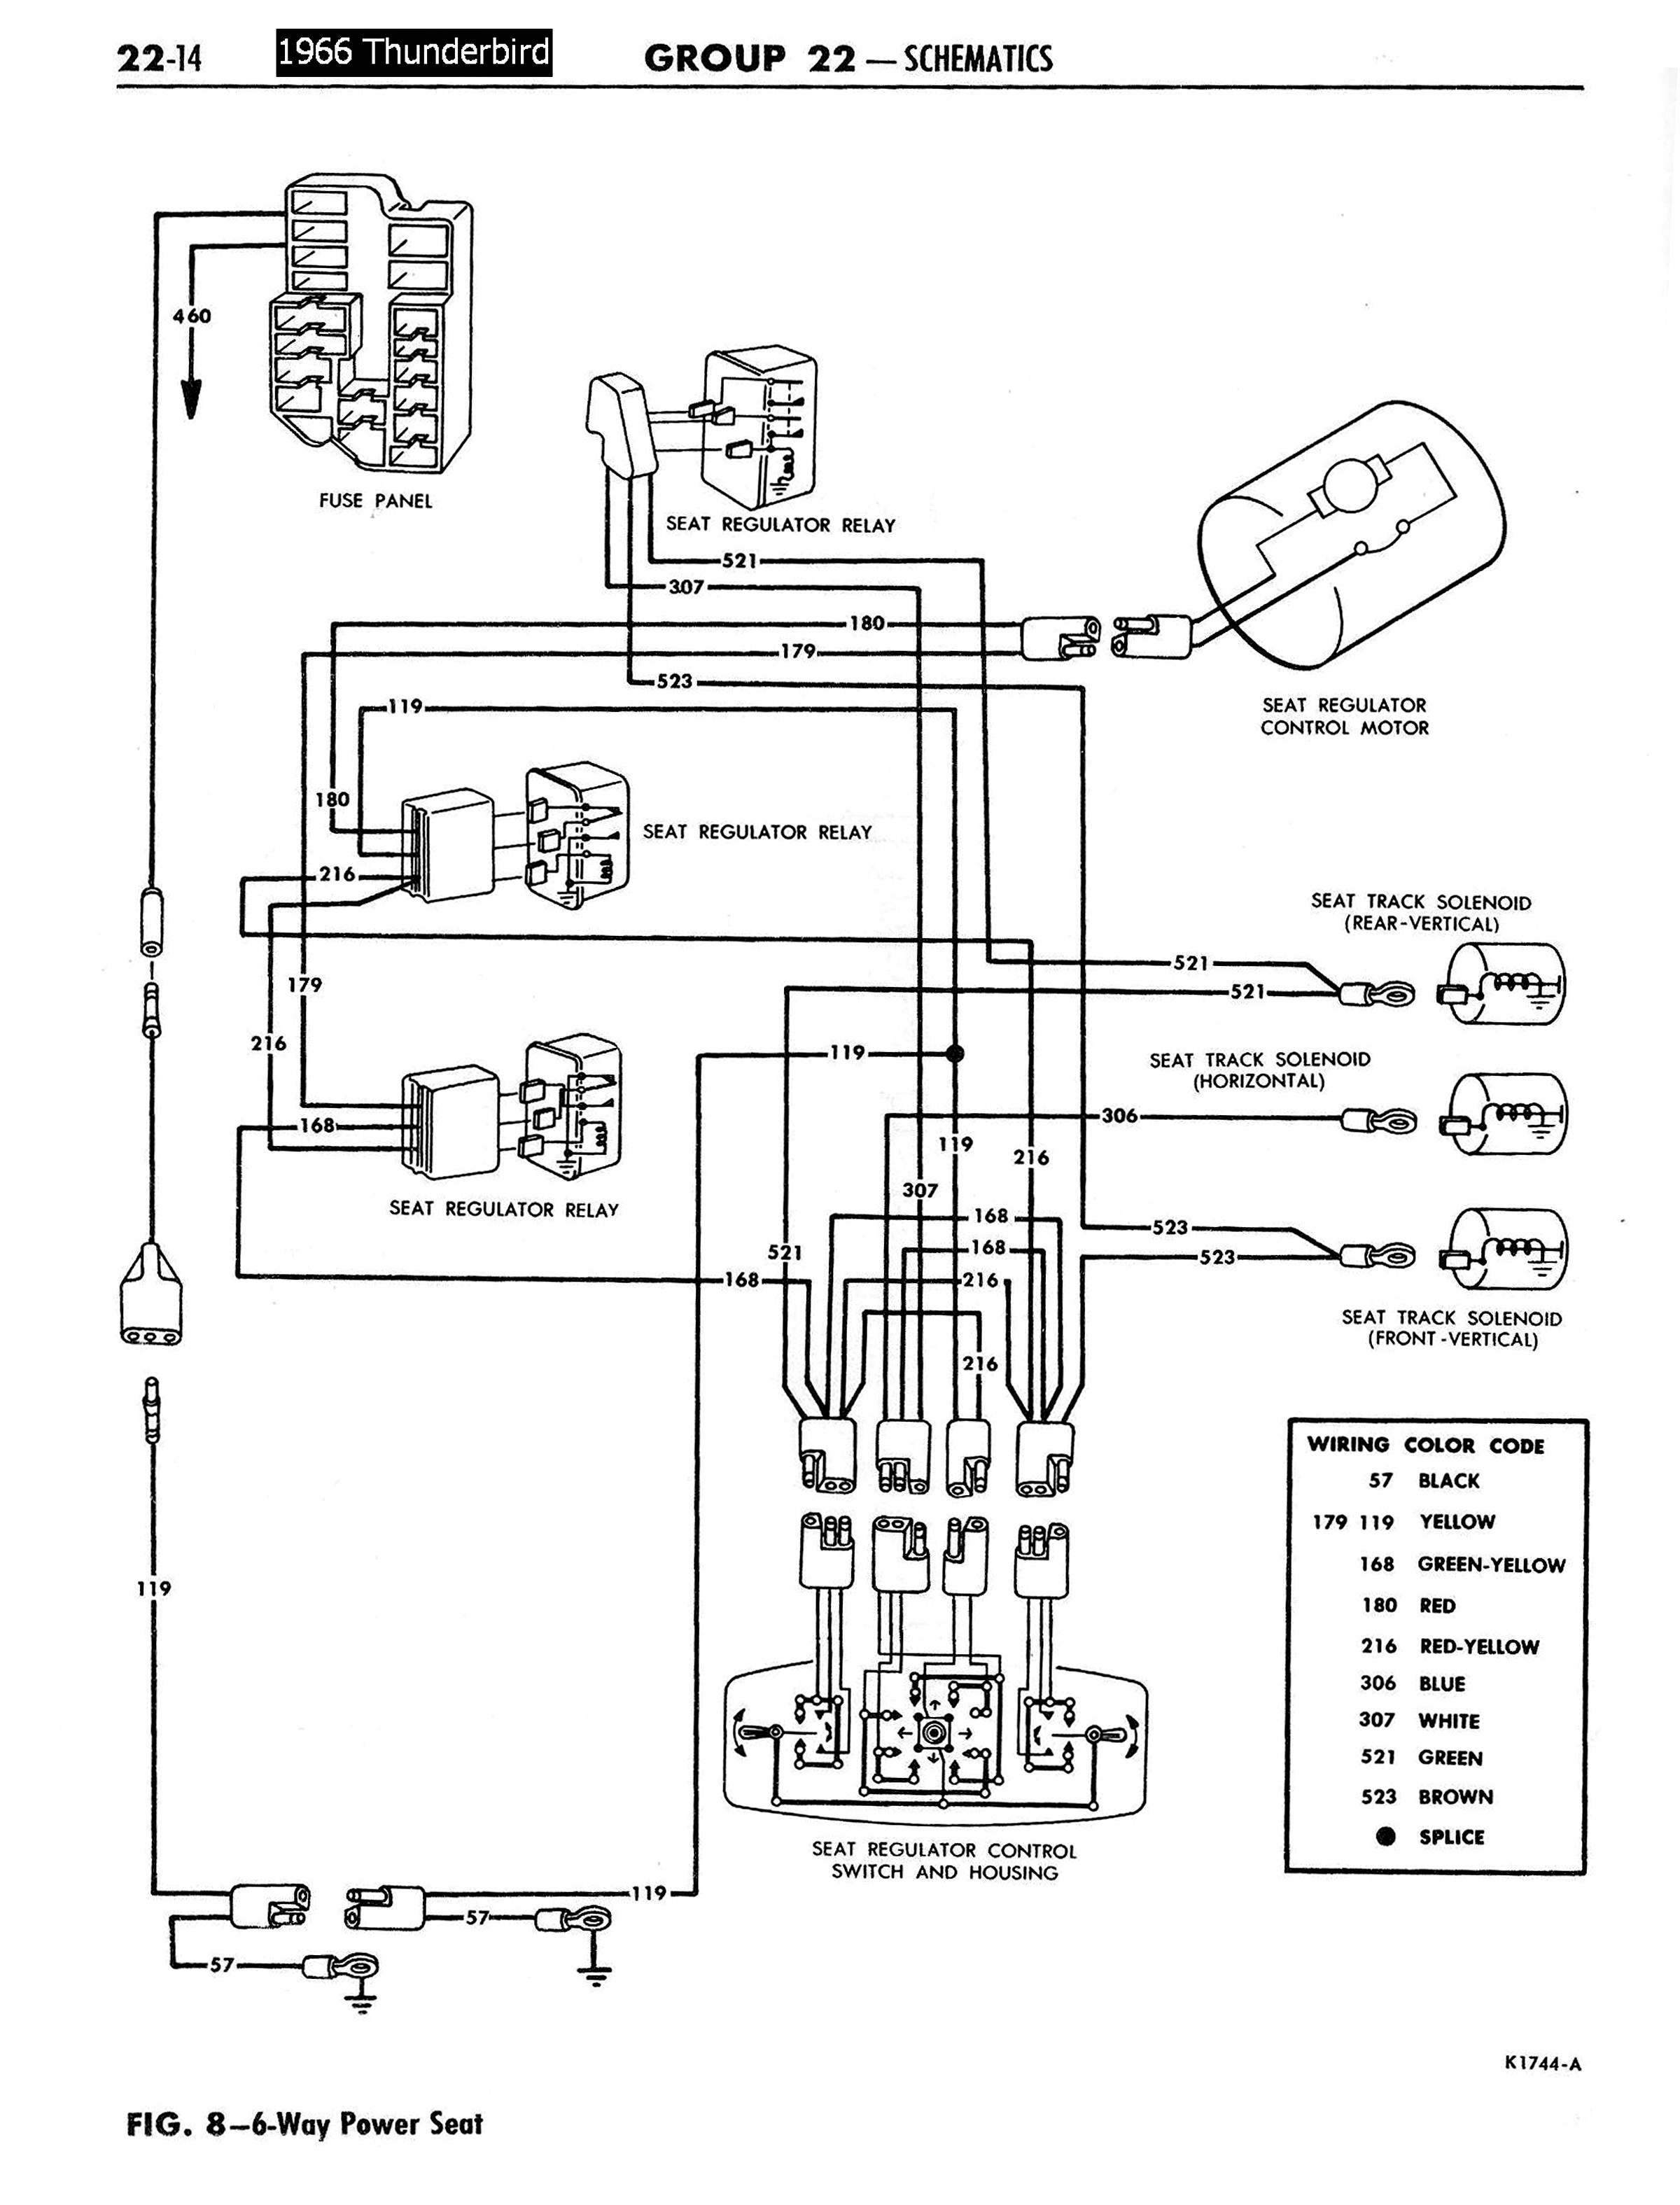 12 volt flasher circuit diagram 12 free engine image for